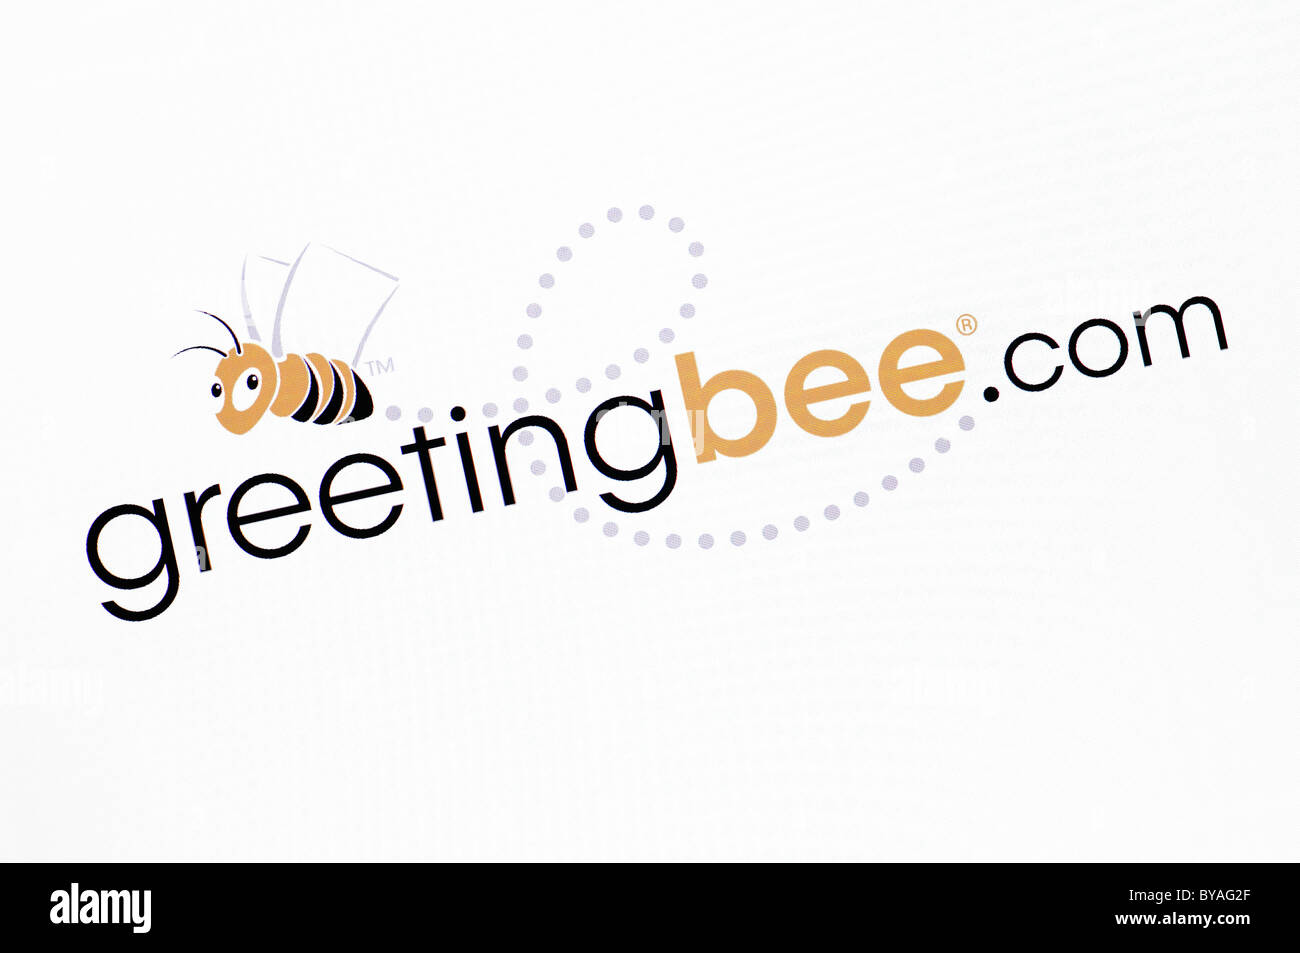 Greetingbee.com site capture d'écran Photo Stock